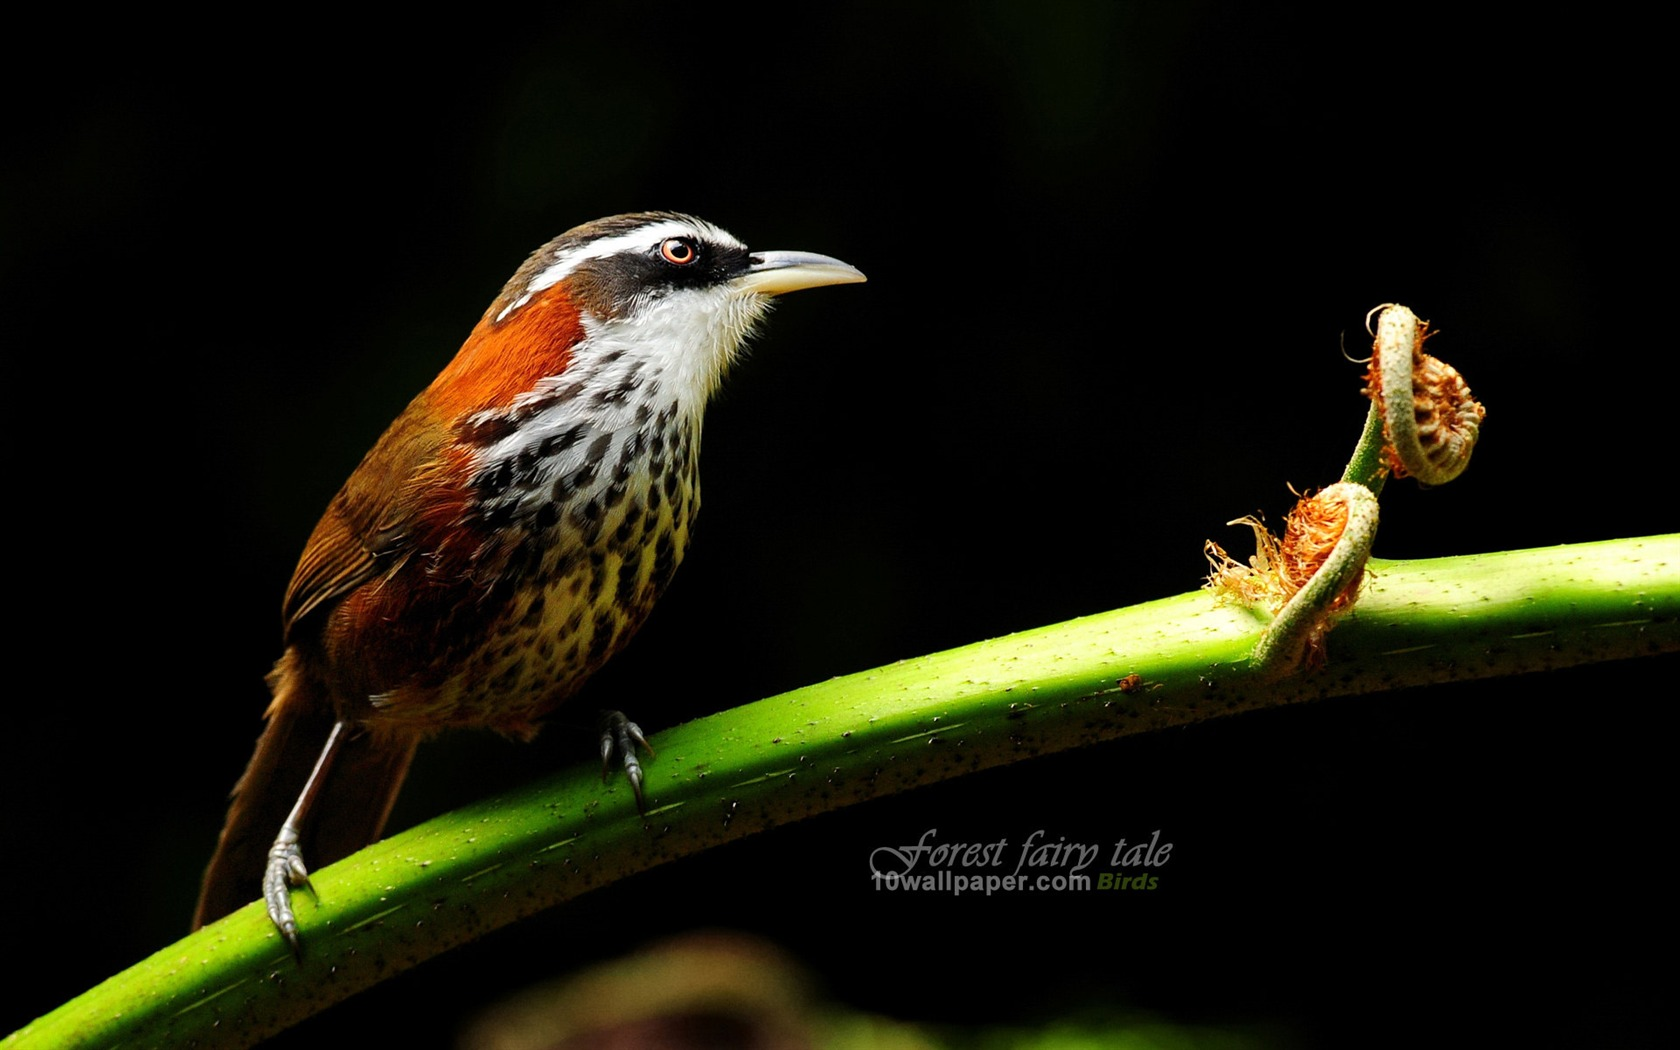 Pin Branches Birds Small Scimitar Babbler Wallpaper 1680x1050 on 1680x1050